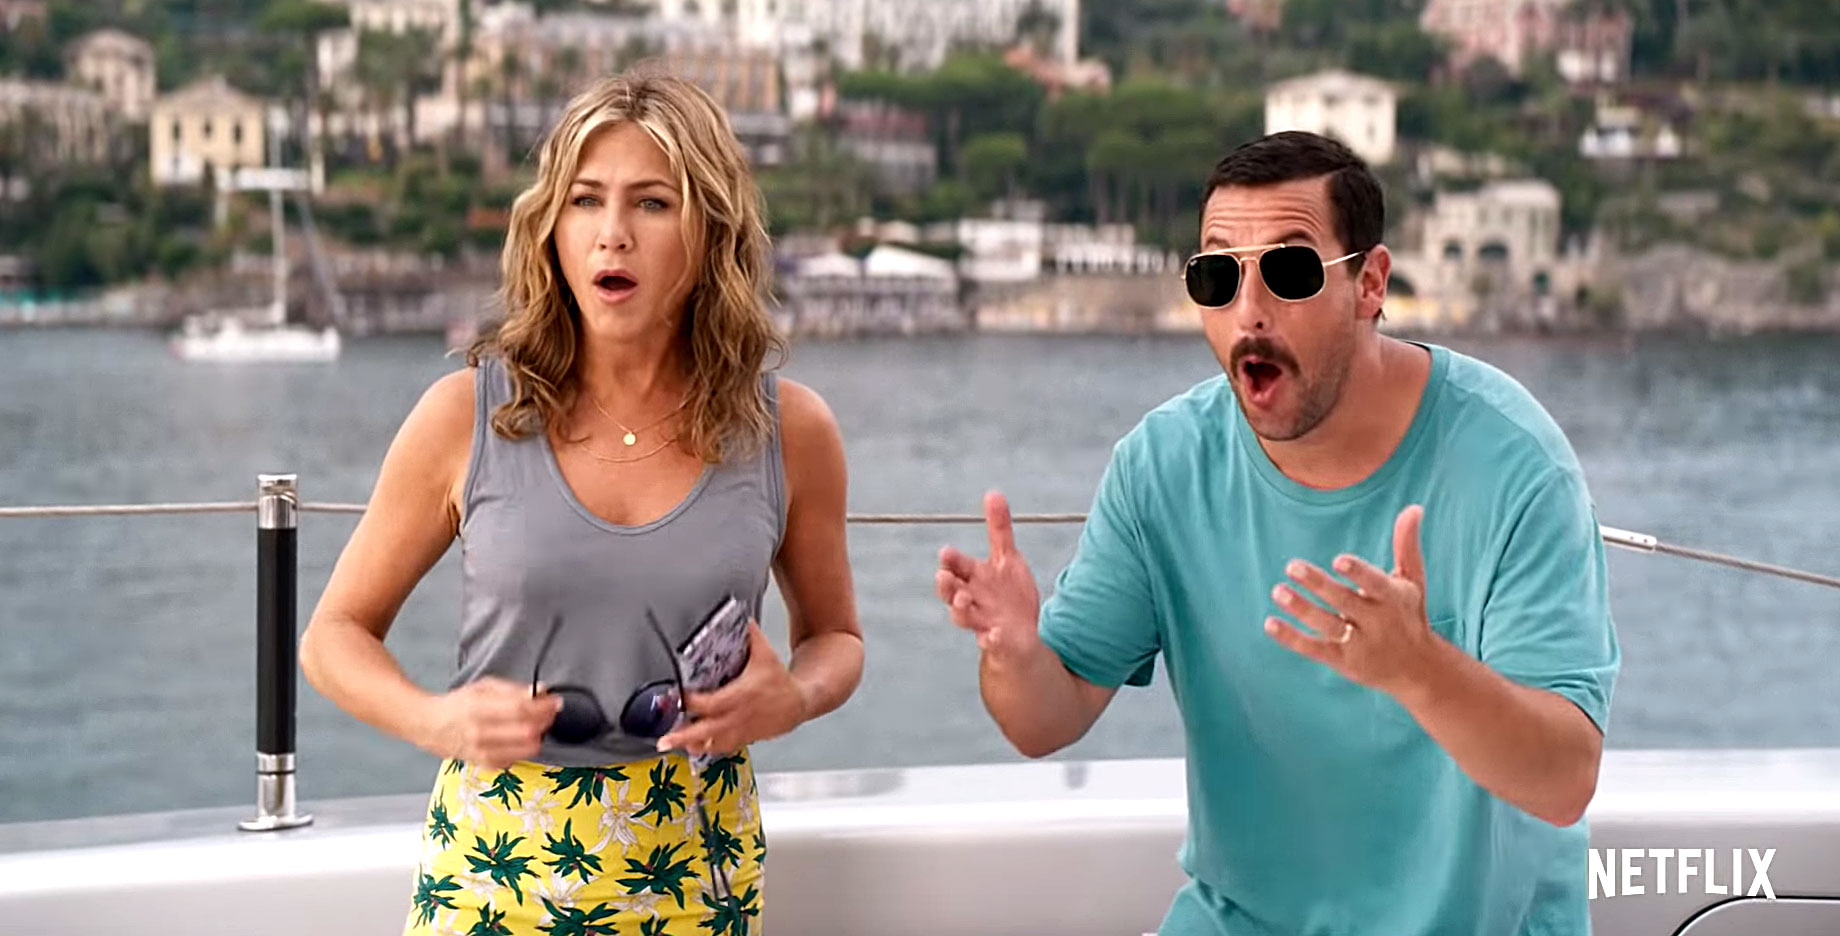 Can't Miss Summer Movie Preview - Adam Sandler and Jennifer Aniston , who costarred in 2011's Just Go With It , team up as a married couple who get caught in a whodunit while on vacation. (Netflix, June 14)